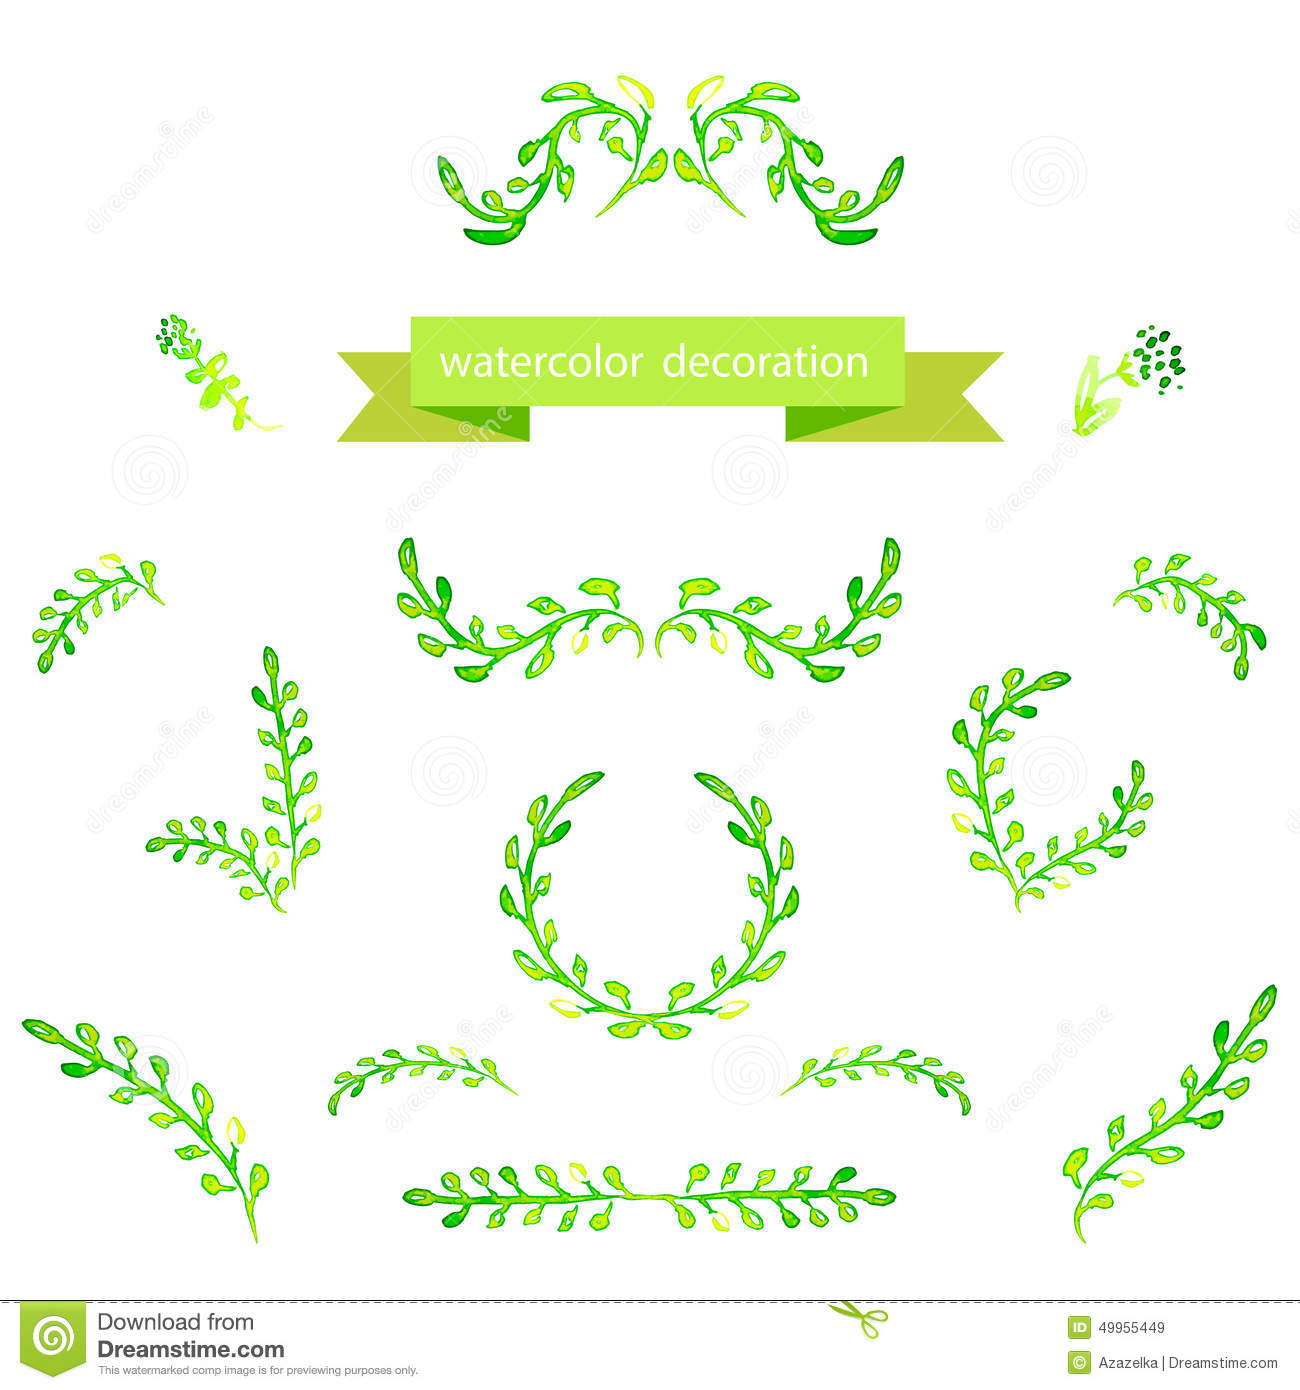 Watercolor Green Design Elements. Brushes, Borders, Wreath. Vector ...